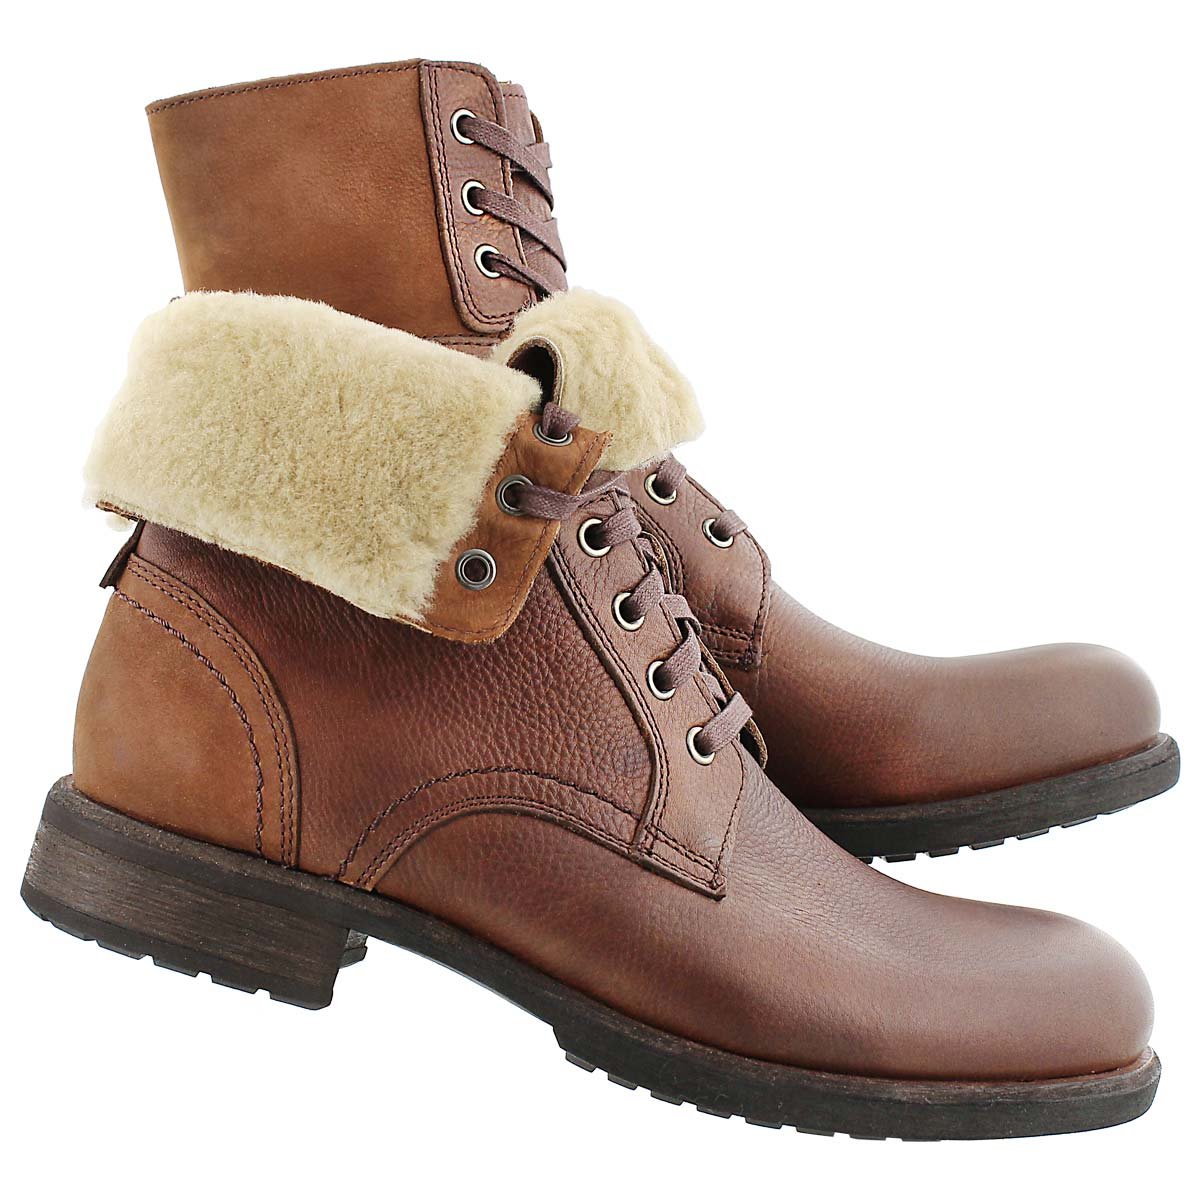 Mns Larus grizzly casual fold down boot